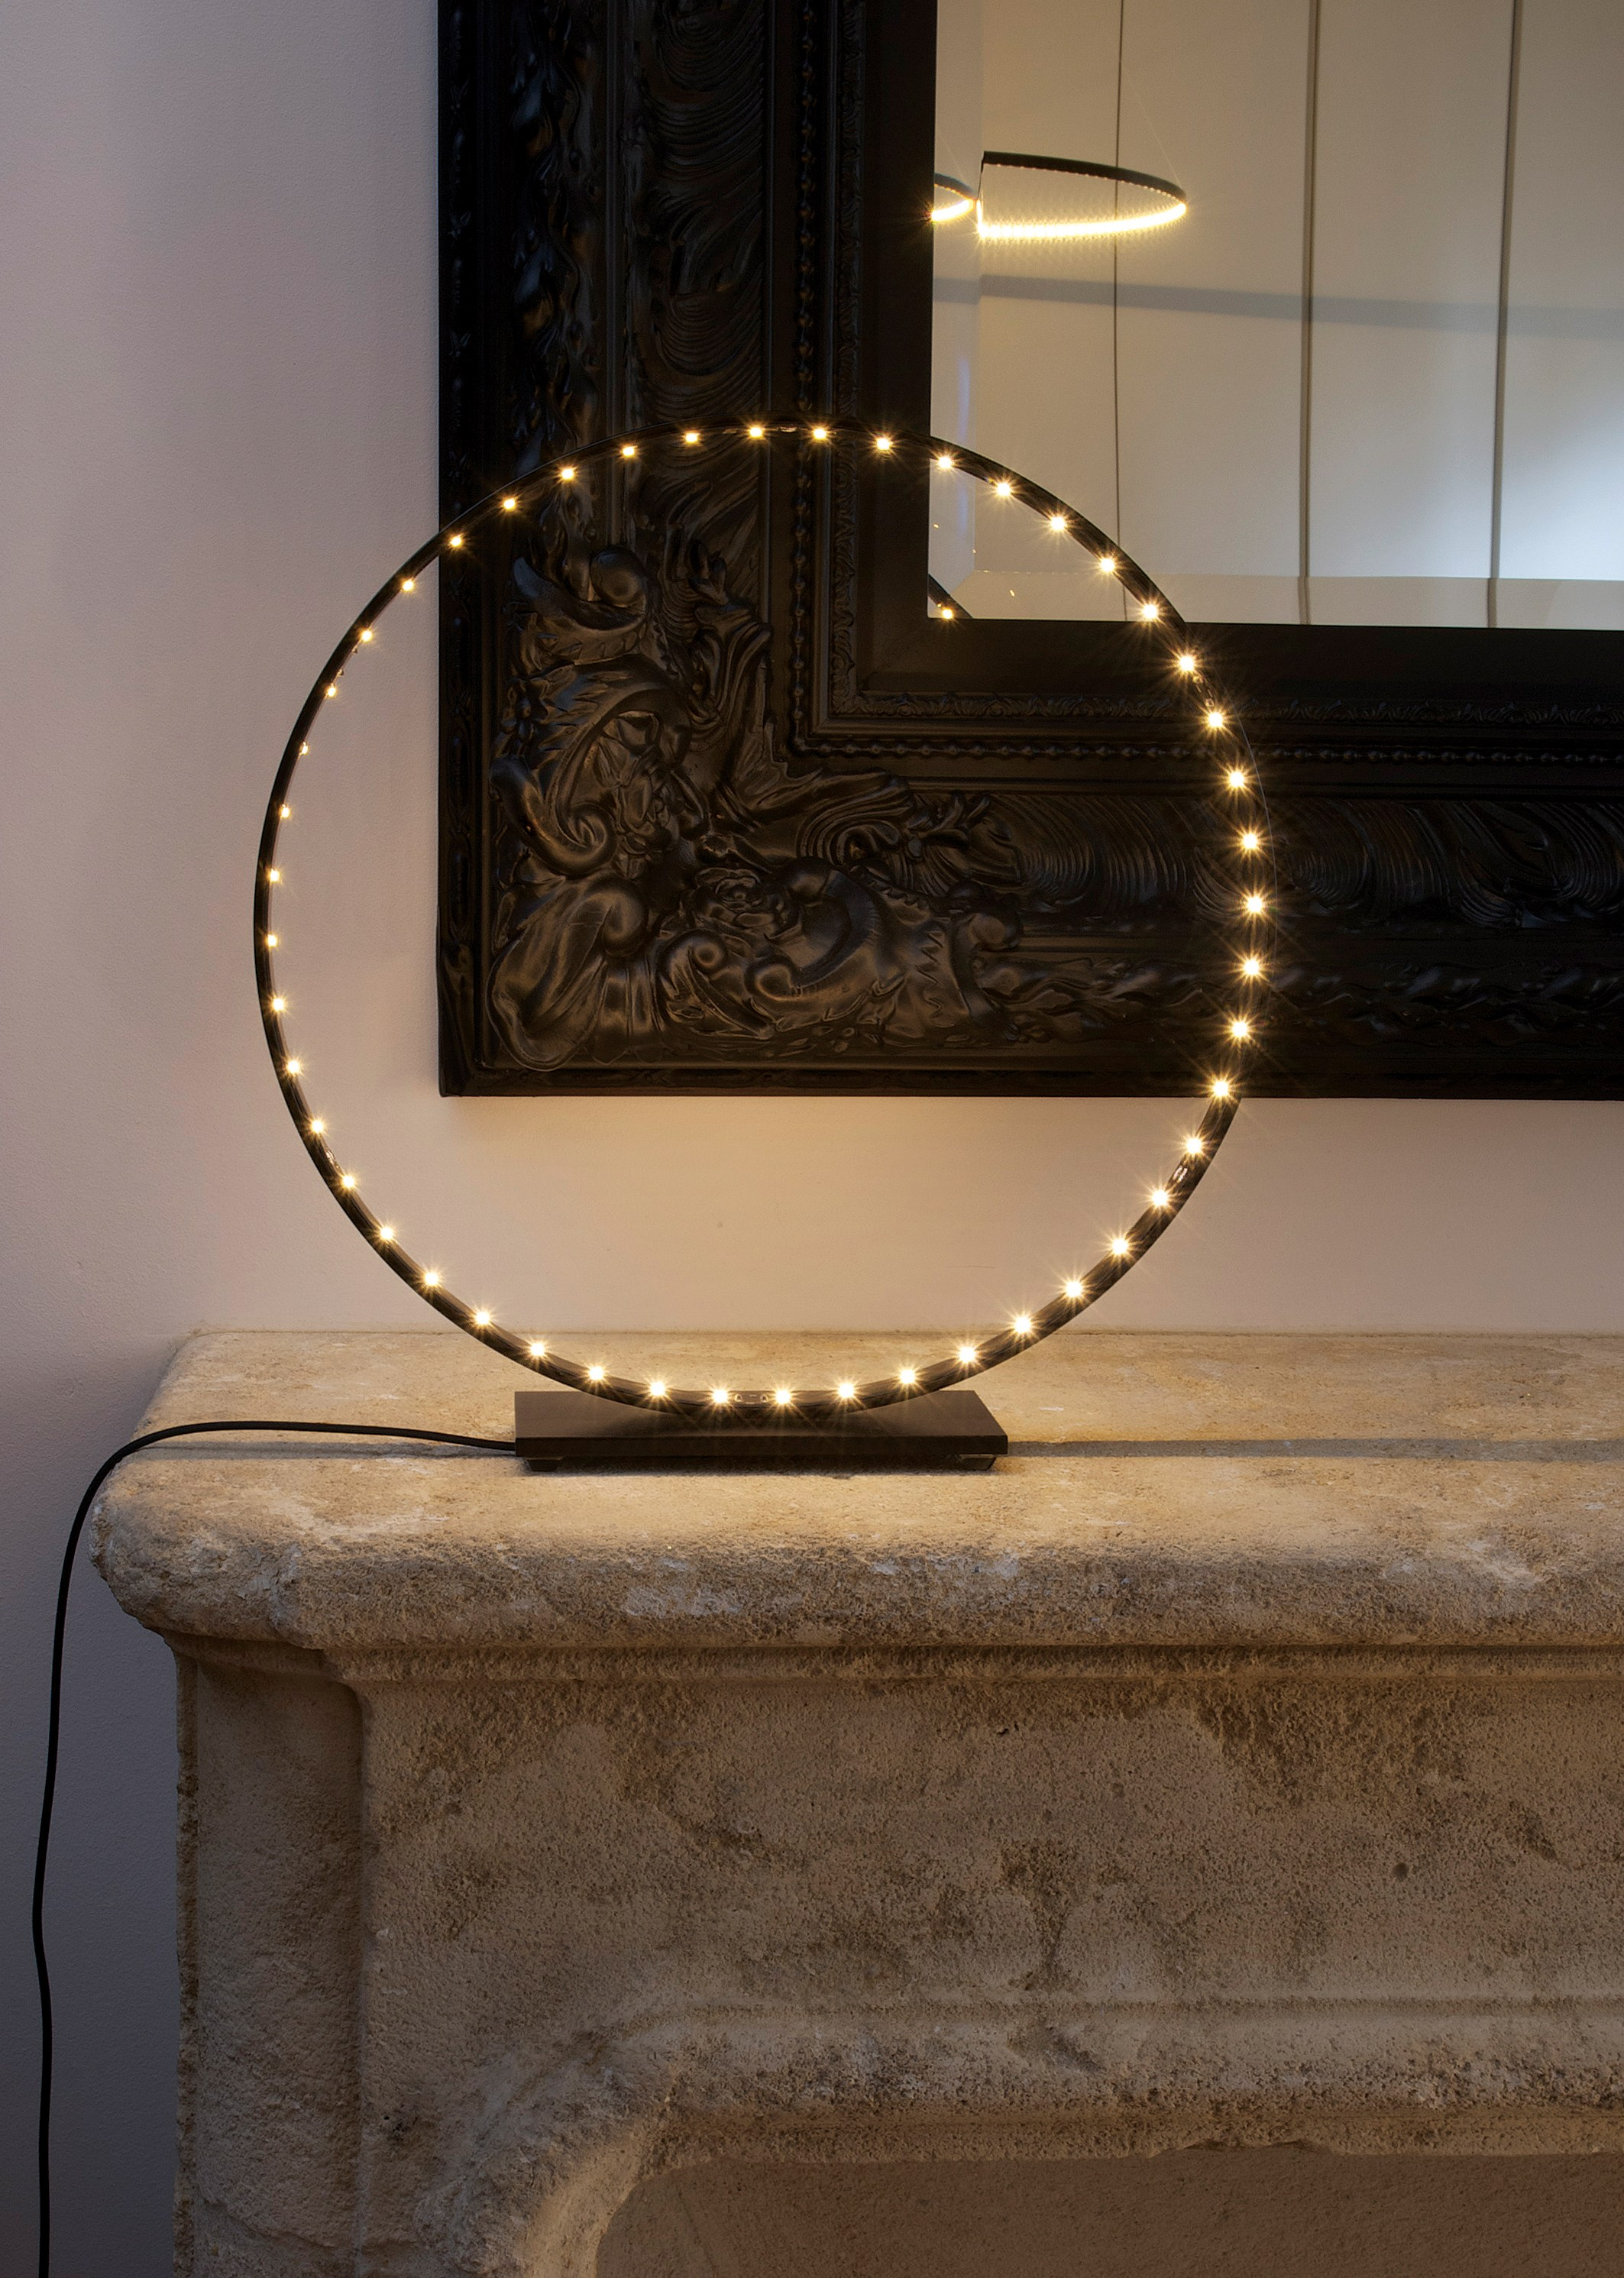 led direct indirect light table lamp la micro 30 by le deun luminaires. Black Bedroom Furniture Sets. Home Design Ideas